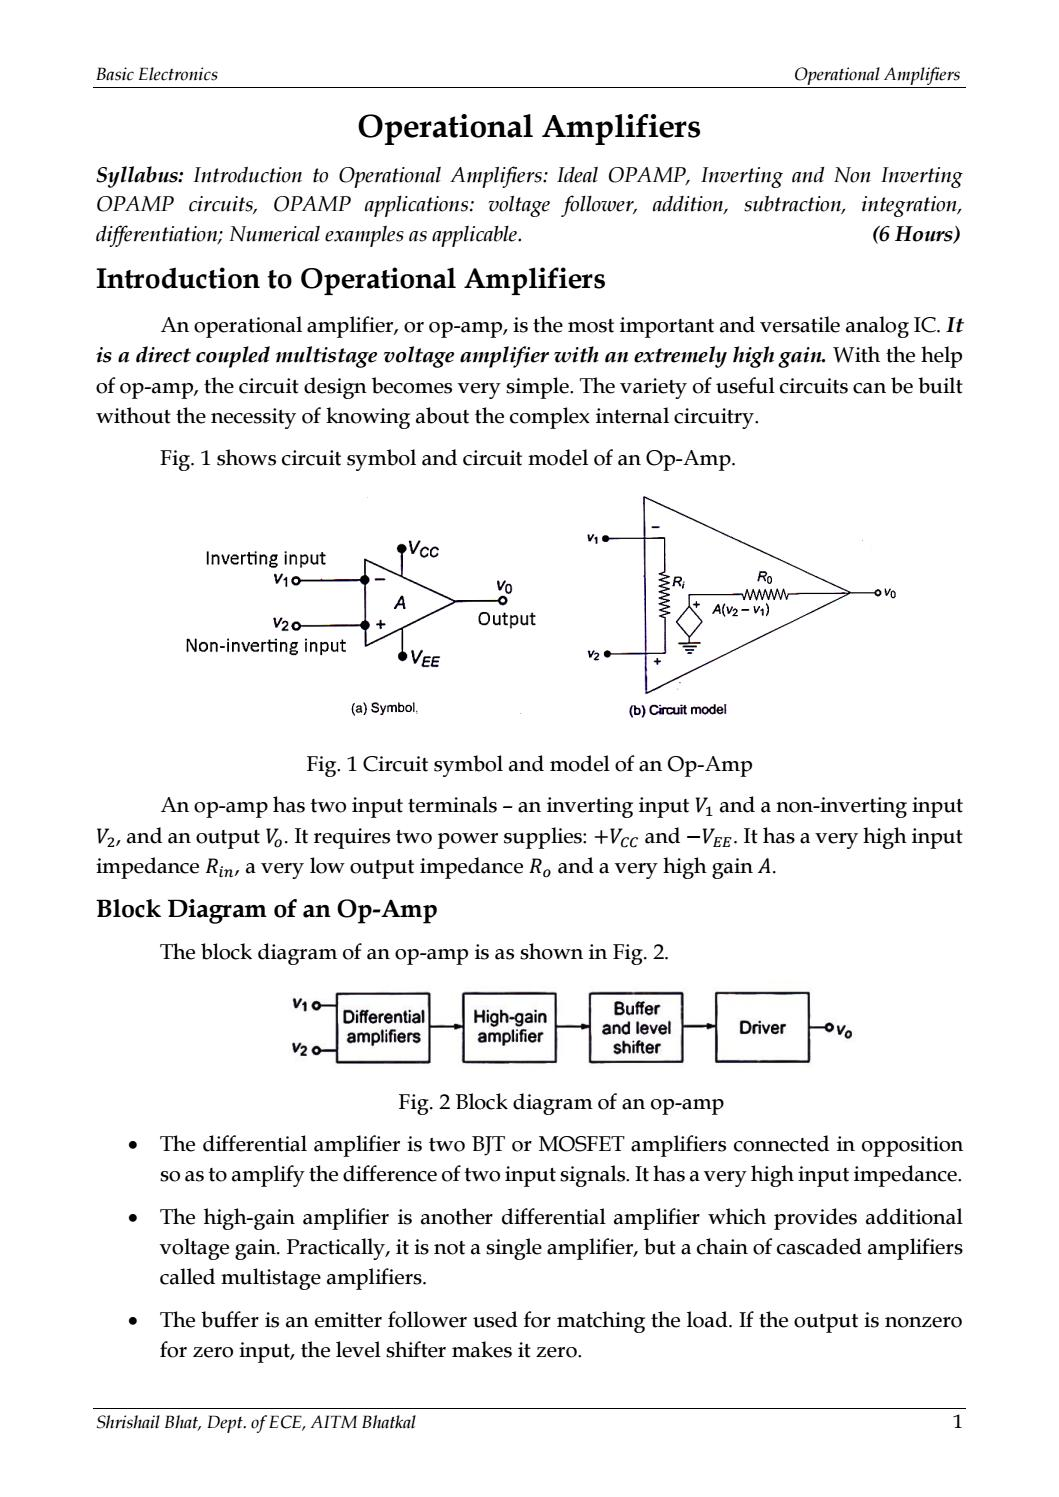 Basic Electronics Introduction To Operational Amplifiers Module 2 Voltage Follower Op Amp Circuit By Shrishail Bhat Issuu